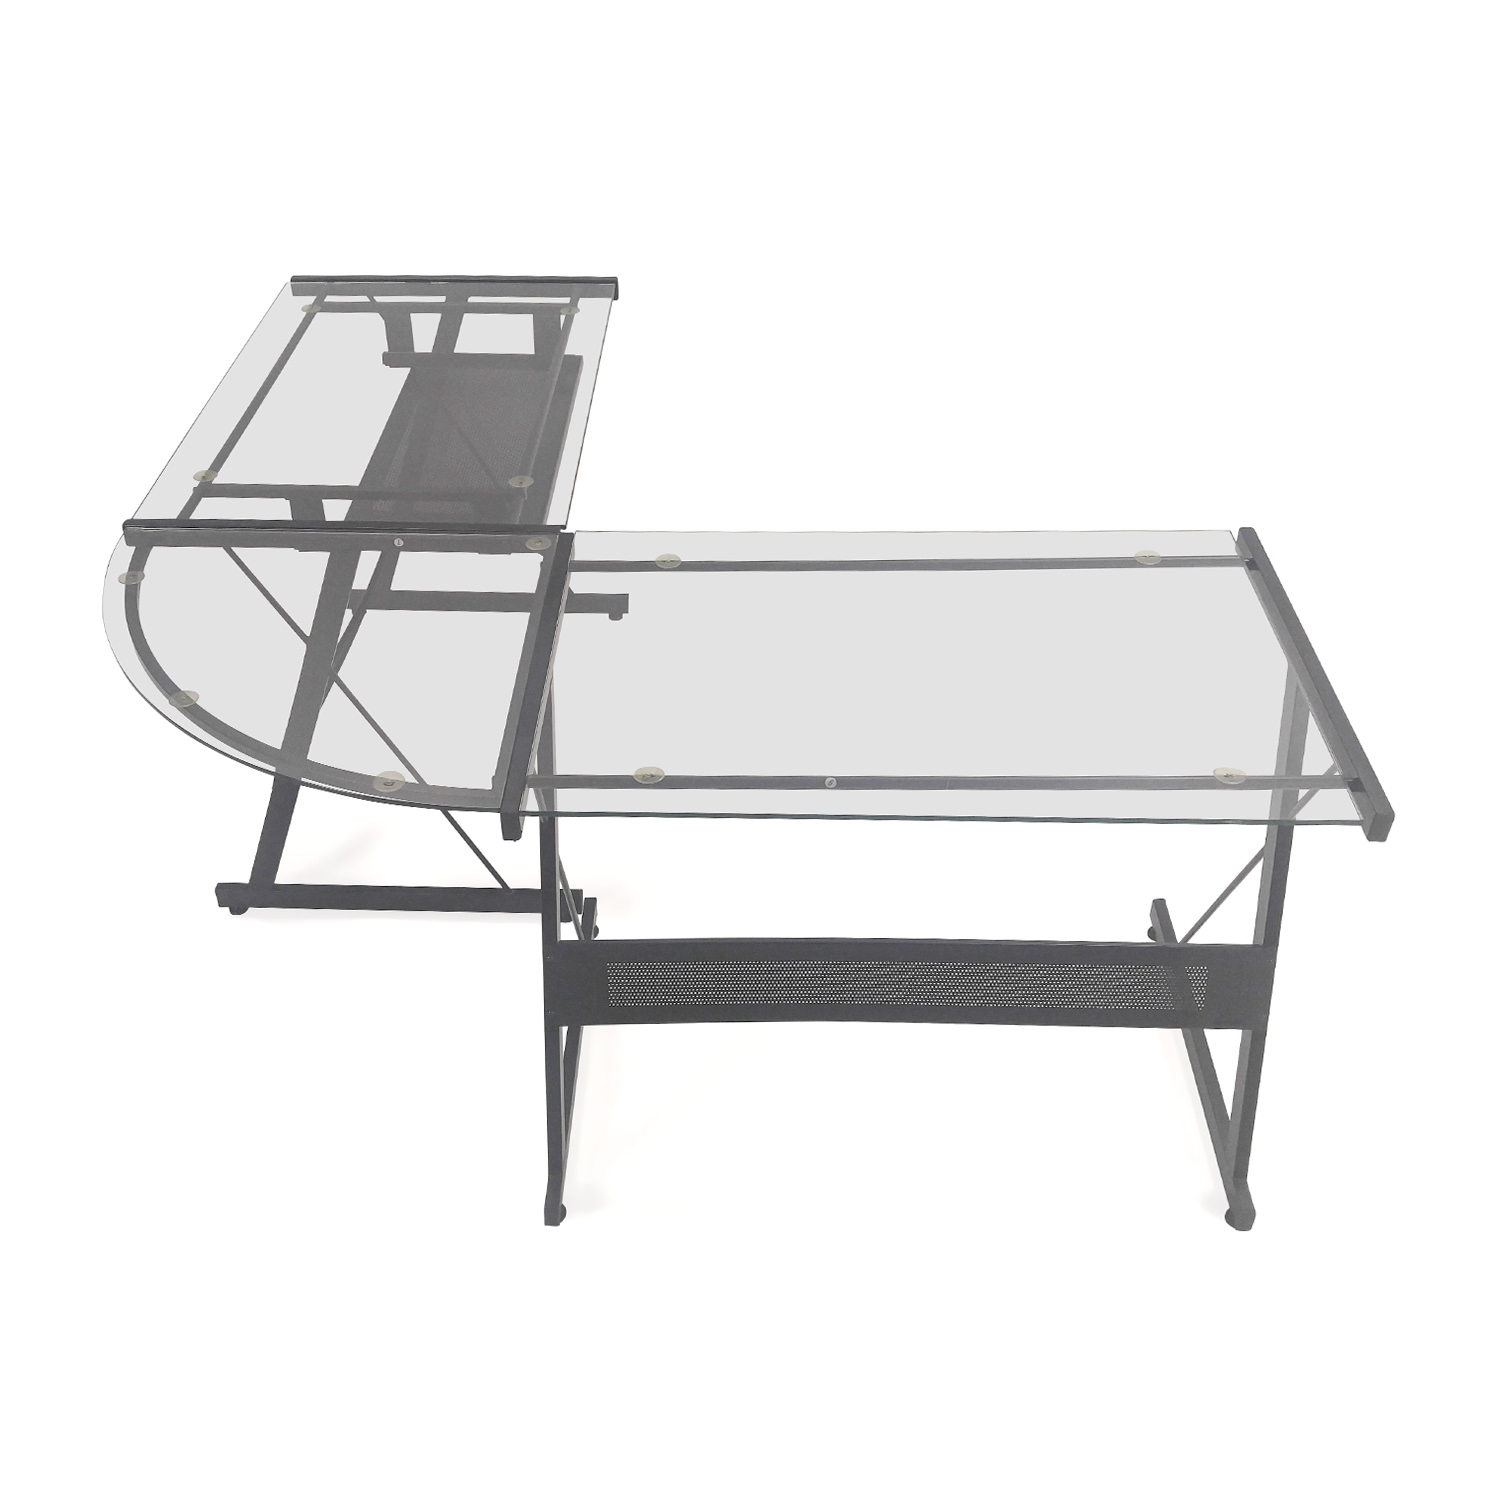 office max lshape glass desk discount - Glass L Shaped Desk